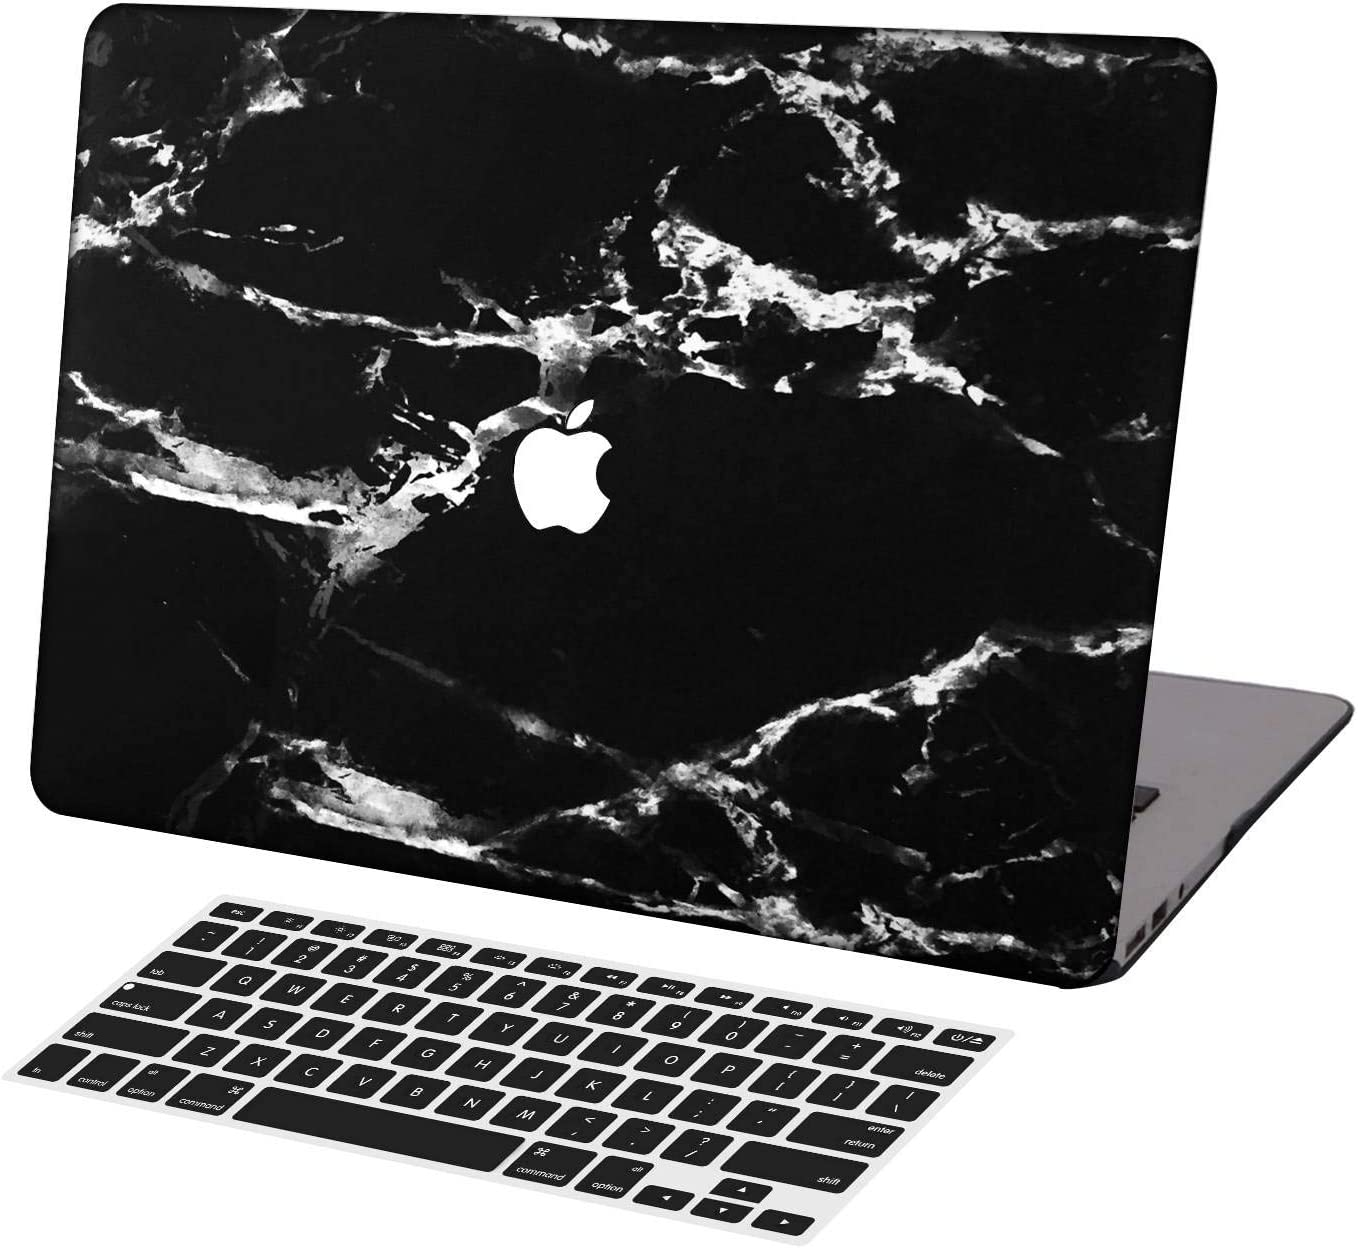 KSK KAISHEK Laptop Case for 2016-2020 Release MacBook Pro 13 Inch Model:A2289/A2251/A2159/A1989/A1706/A1708,Plastic Ultra Slim Light Hard Shell Keyboard Cover,Black & White Marble